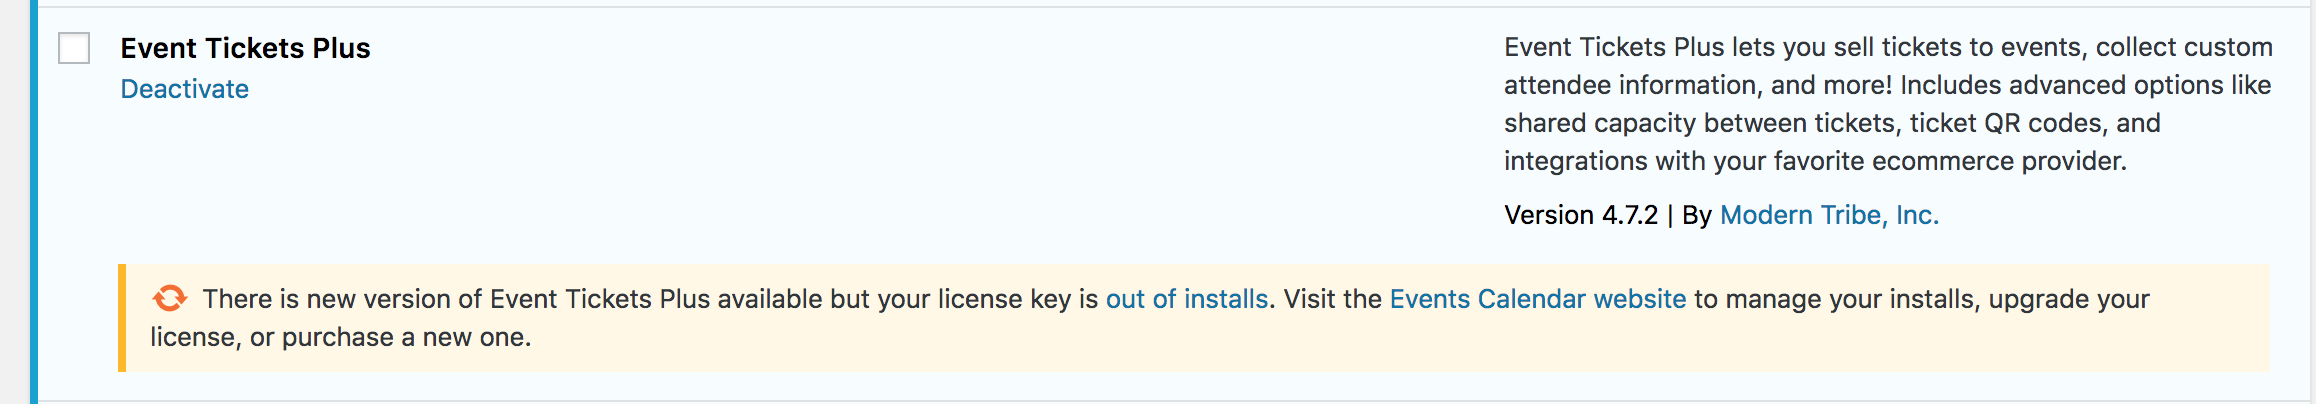 Renewed my License but plugin still says expired | The